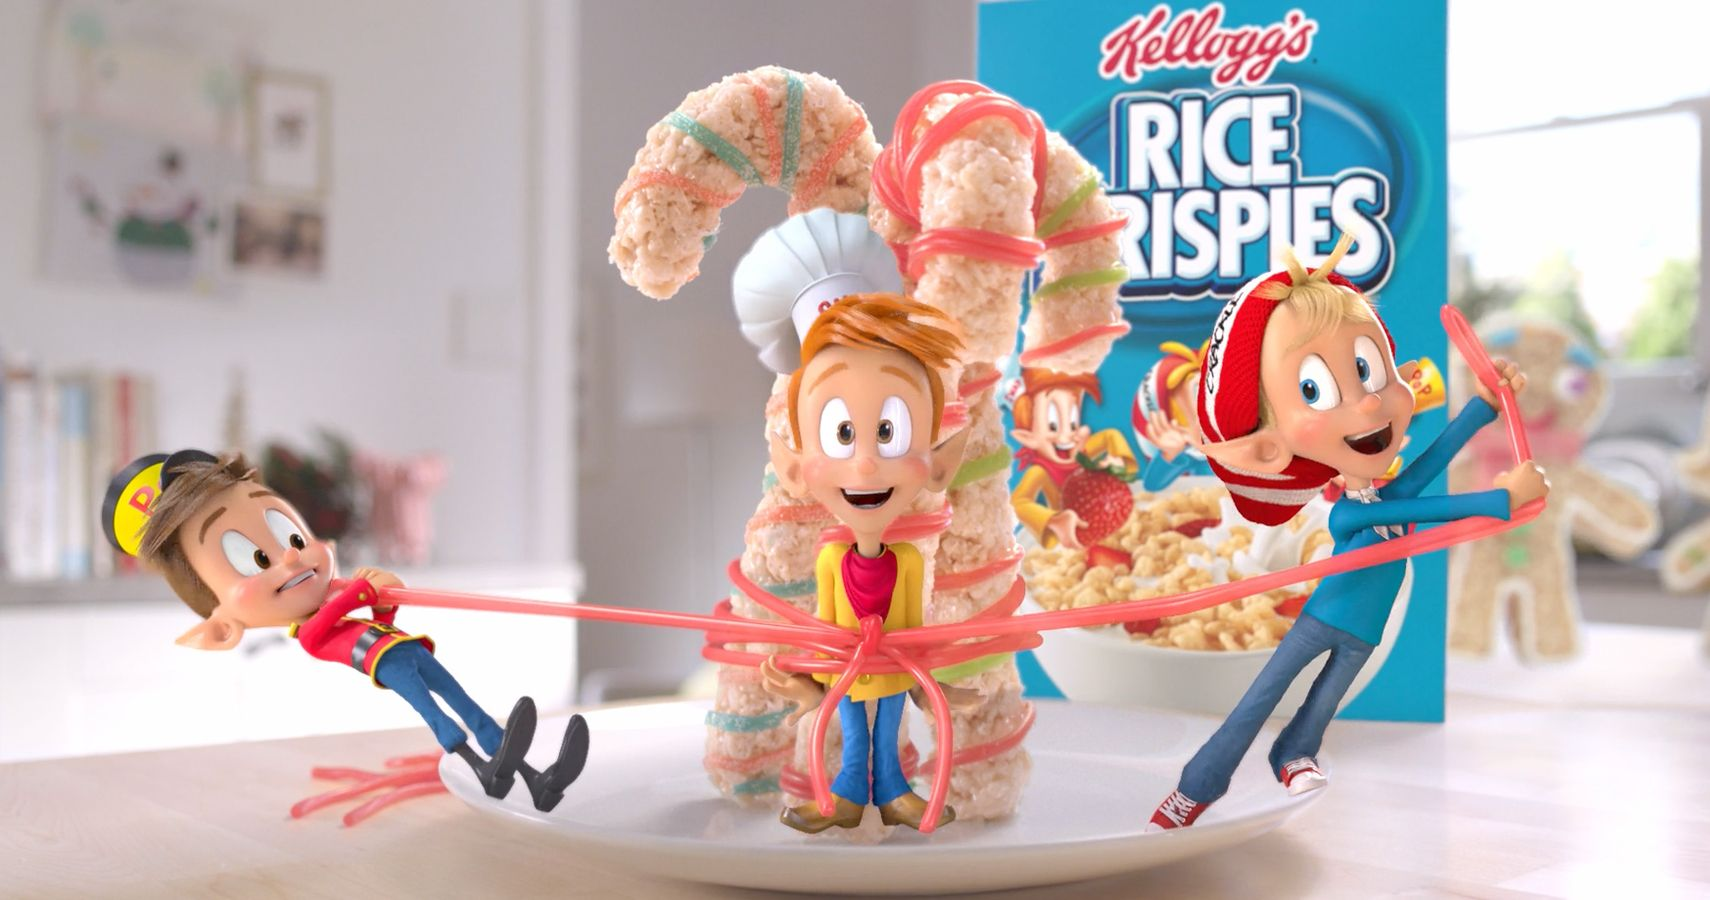 20 Things That Make No Sense About These Cereal Mascots